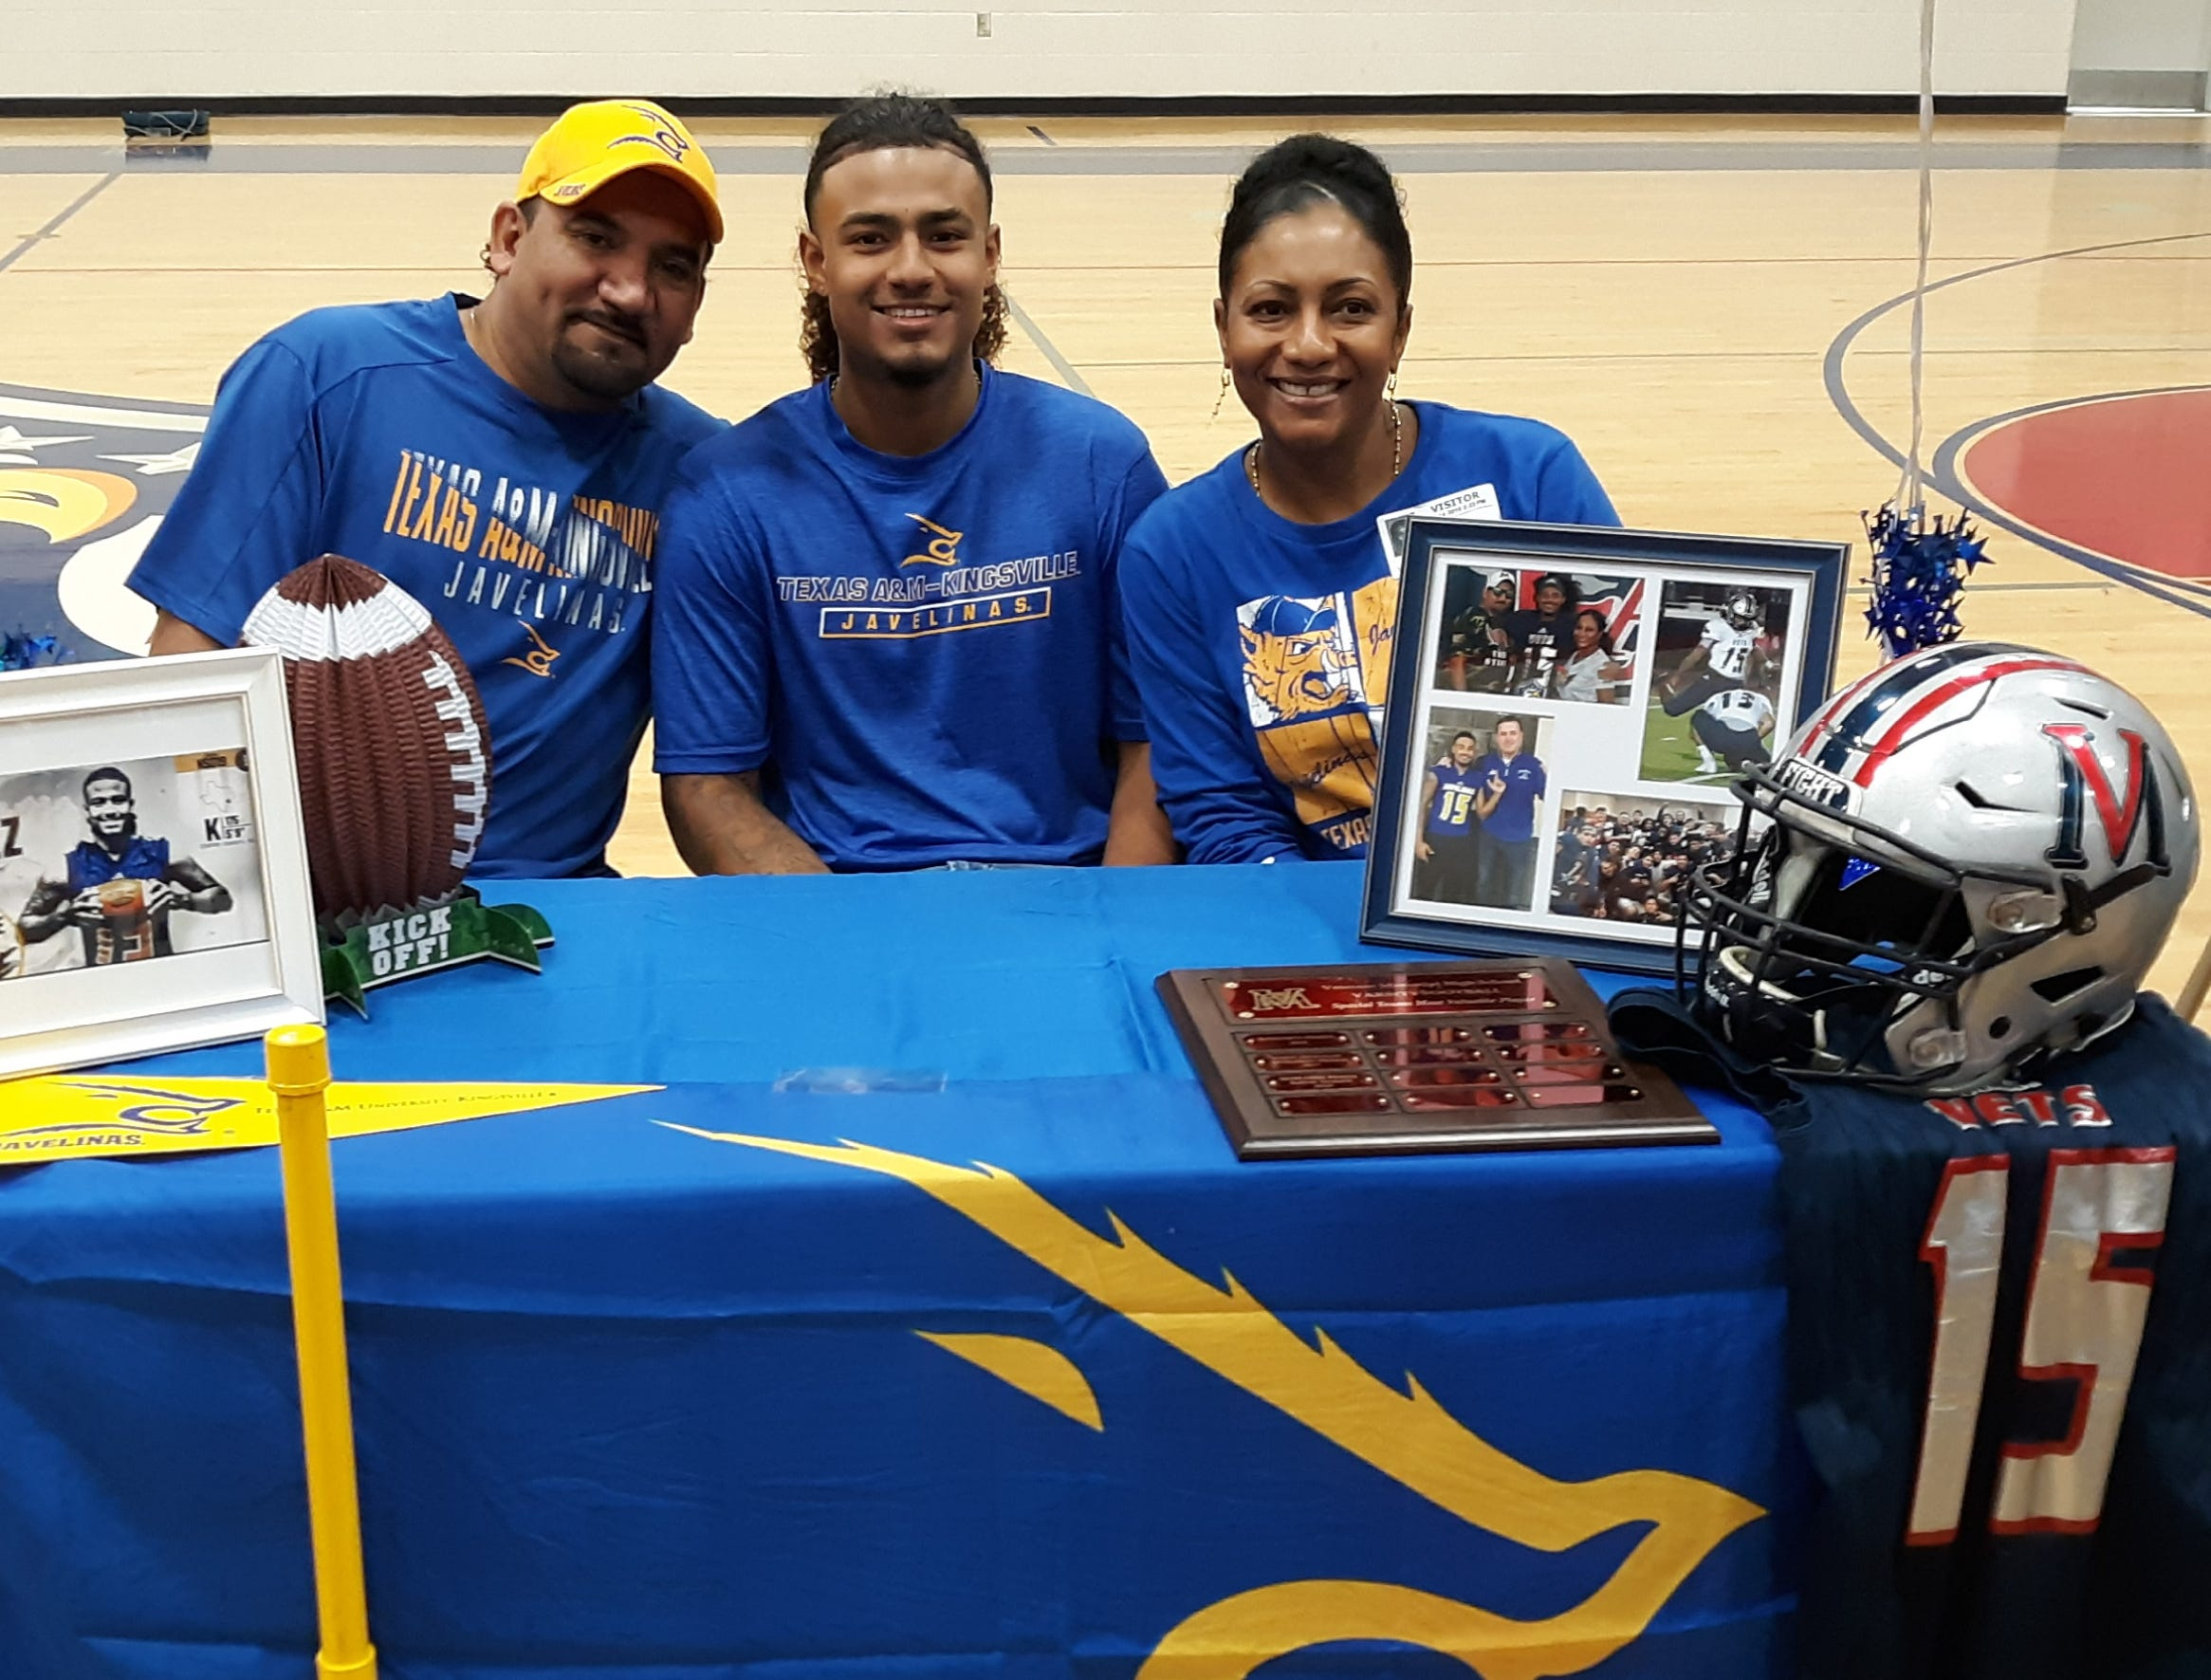 Veterans Memorial kicker Romario Perez signed with Texas A&M-Kingsville on Thursday. Perez was a first team selection on the All-South Texas team and the 2018 Class 5A Associated Press All-State team.